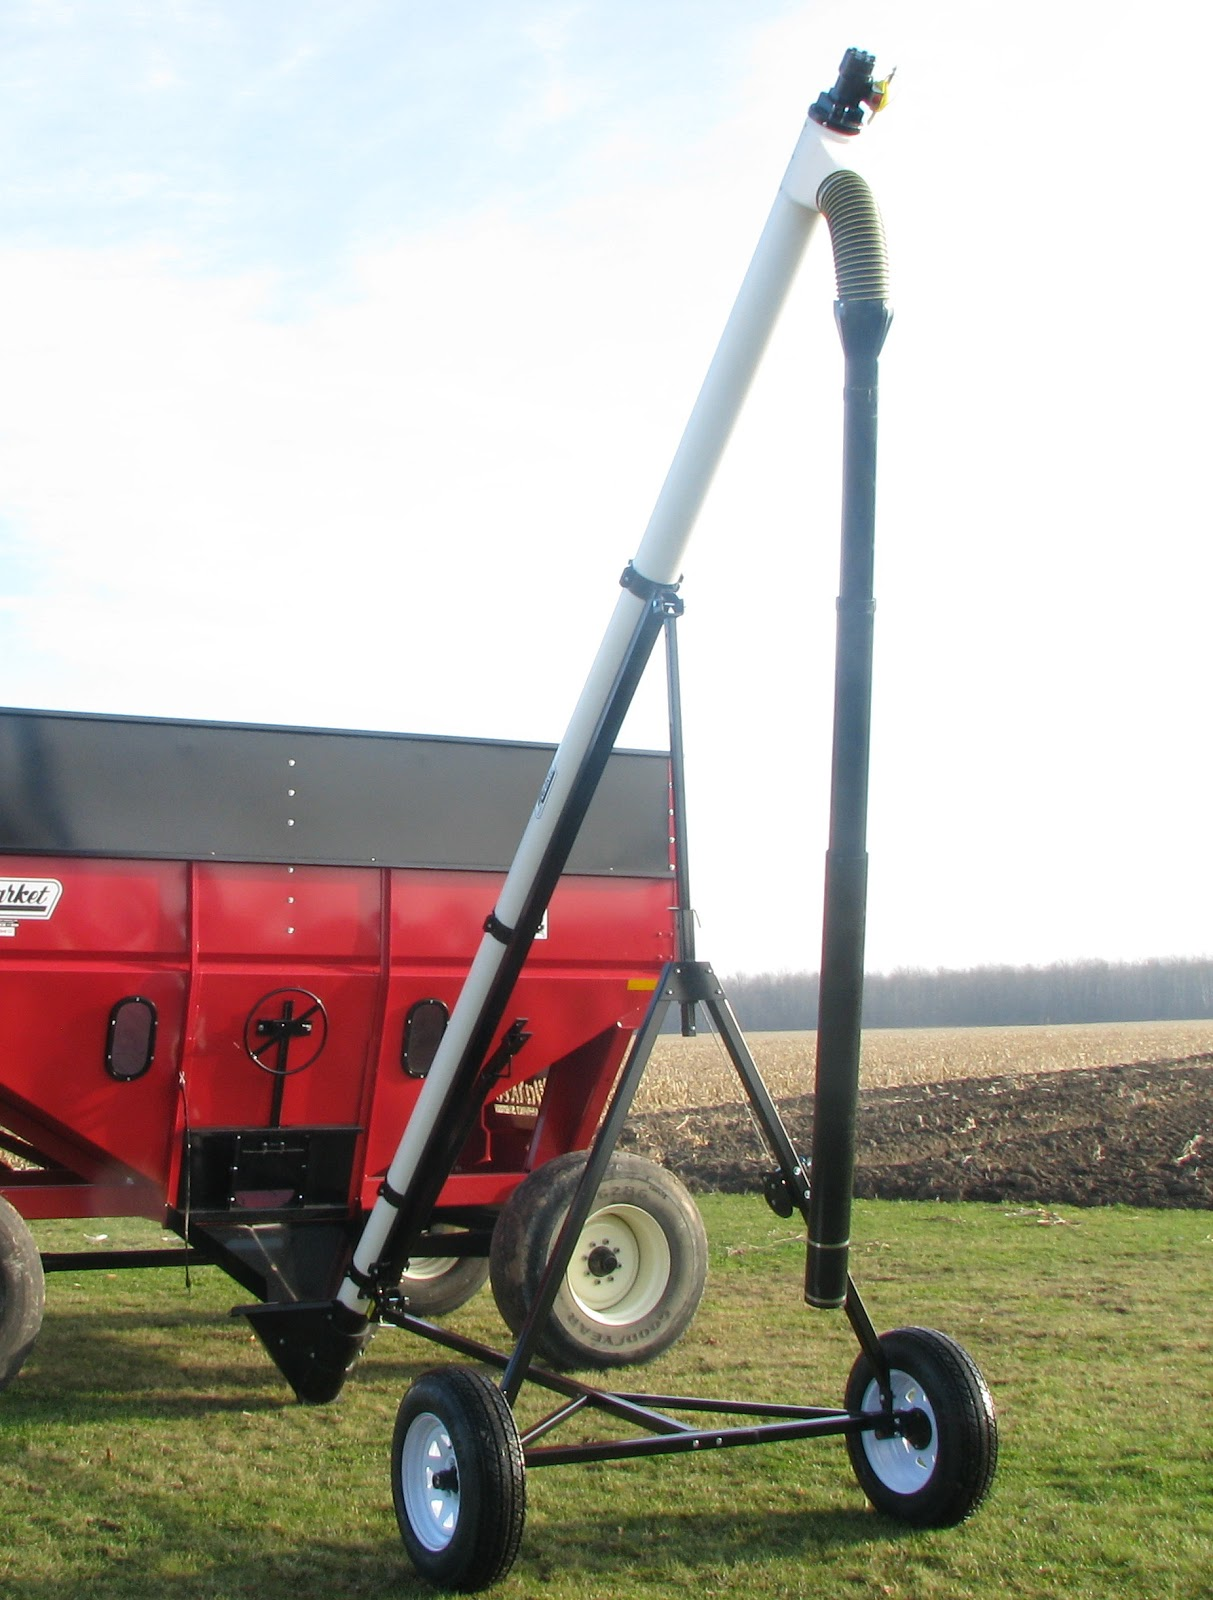 Auger mate auger tool image for Hydraulic auger motor for sale